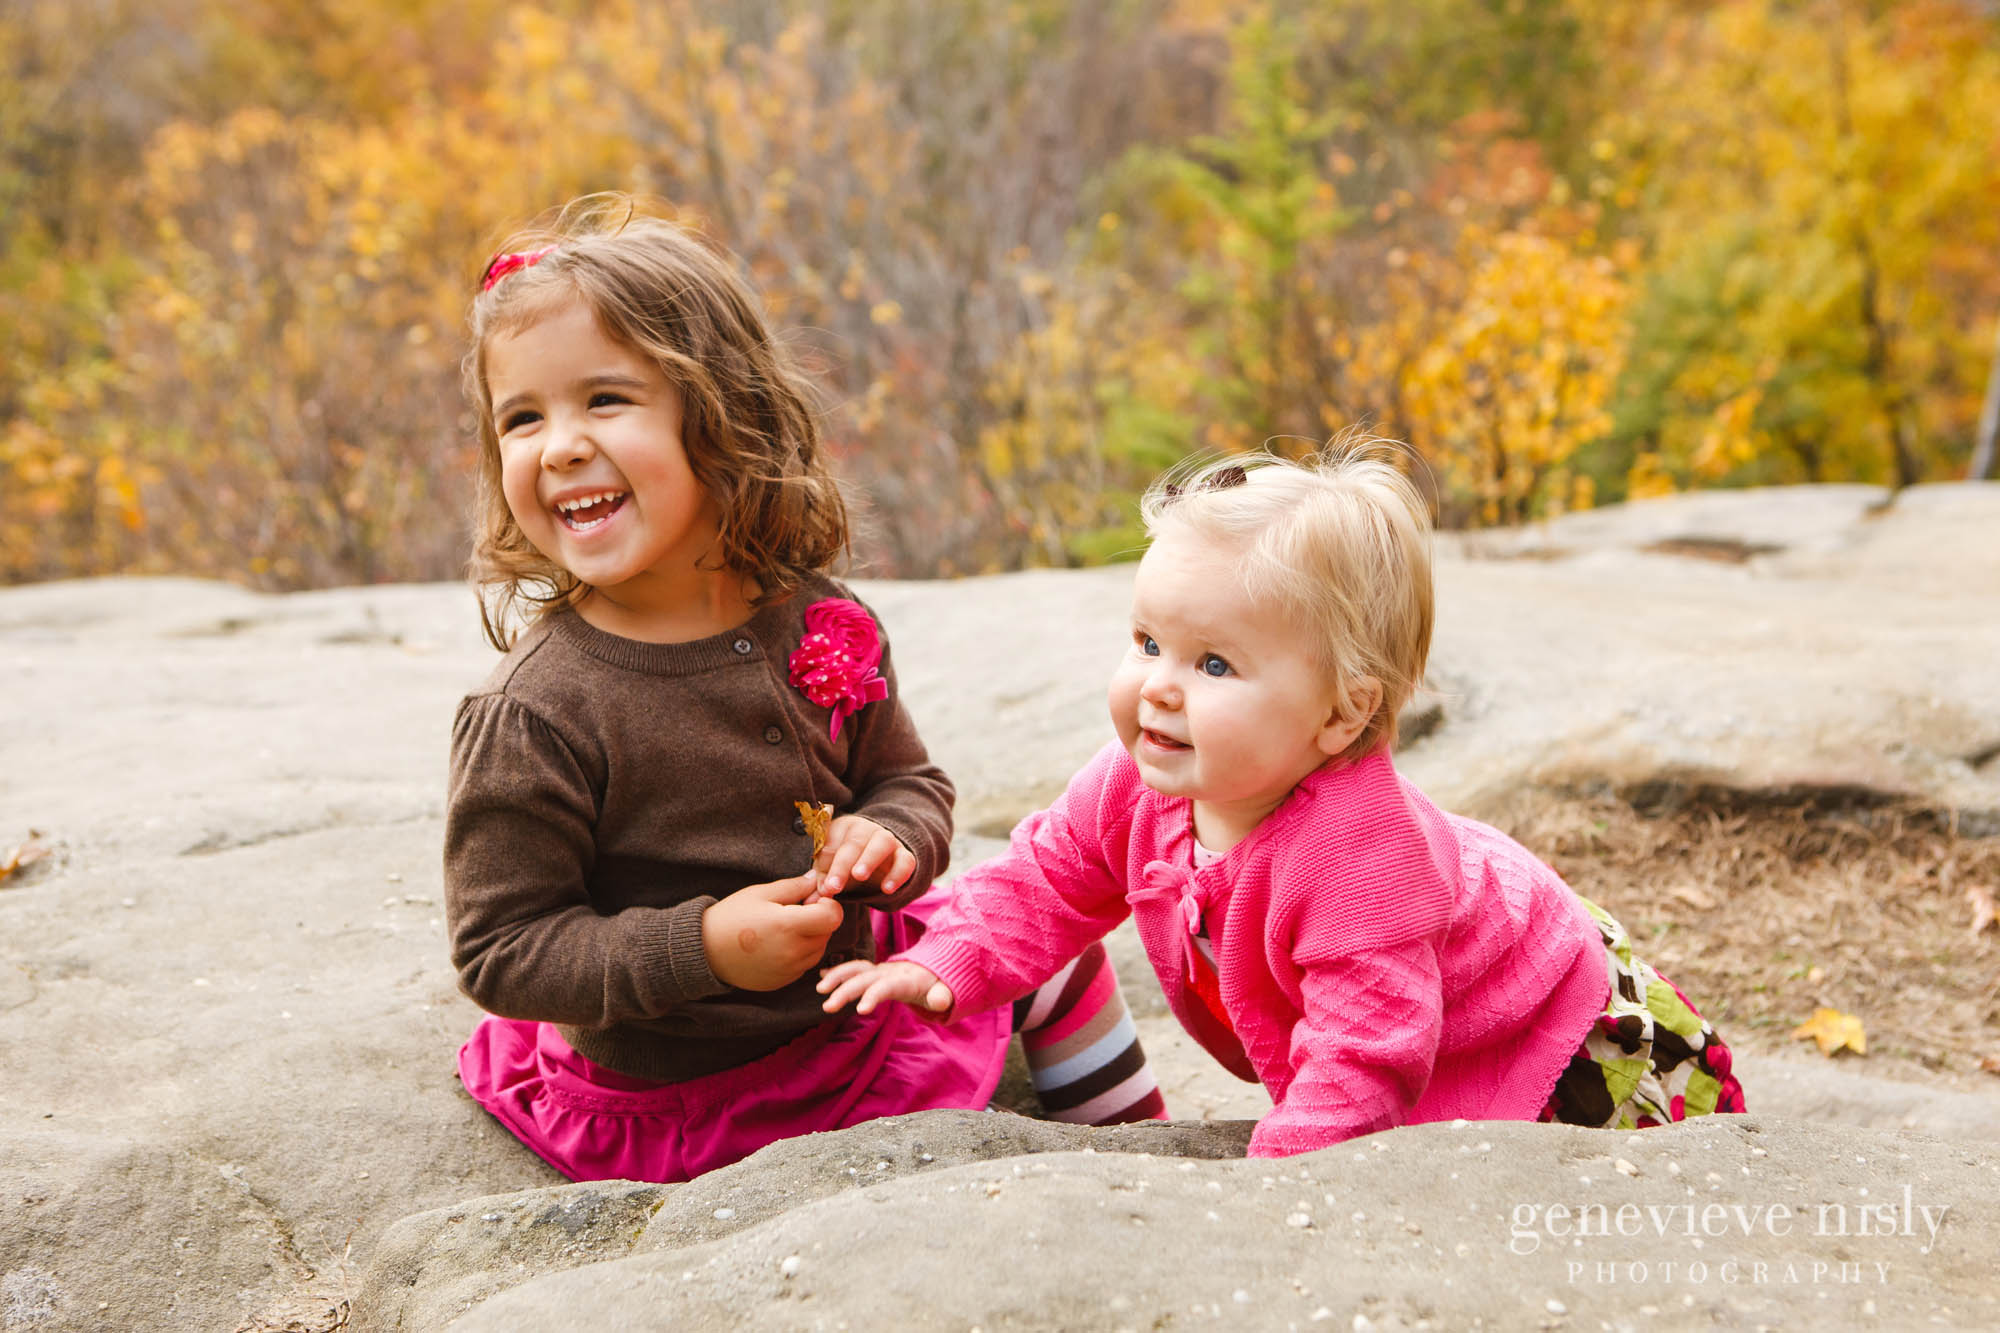 Copyright Genevieve Nisly Photography, Kids, Ohio, Portraits, Summer